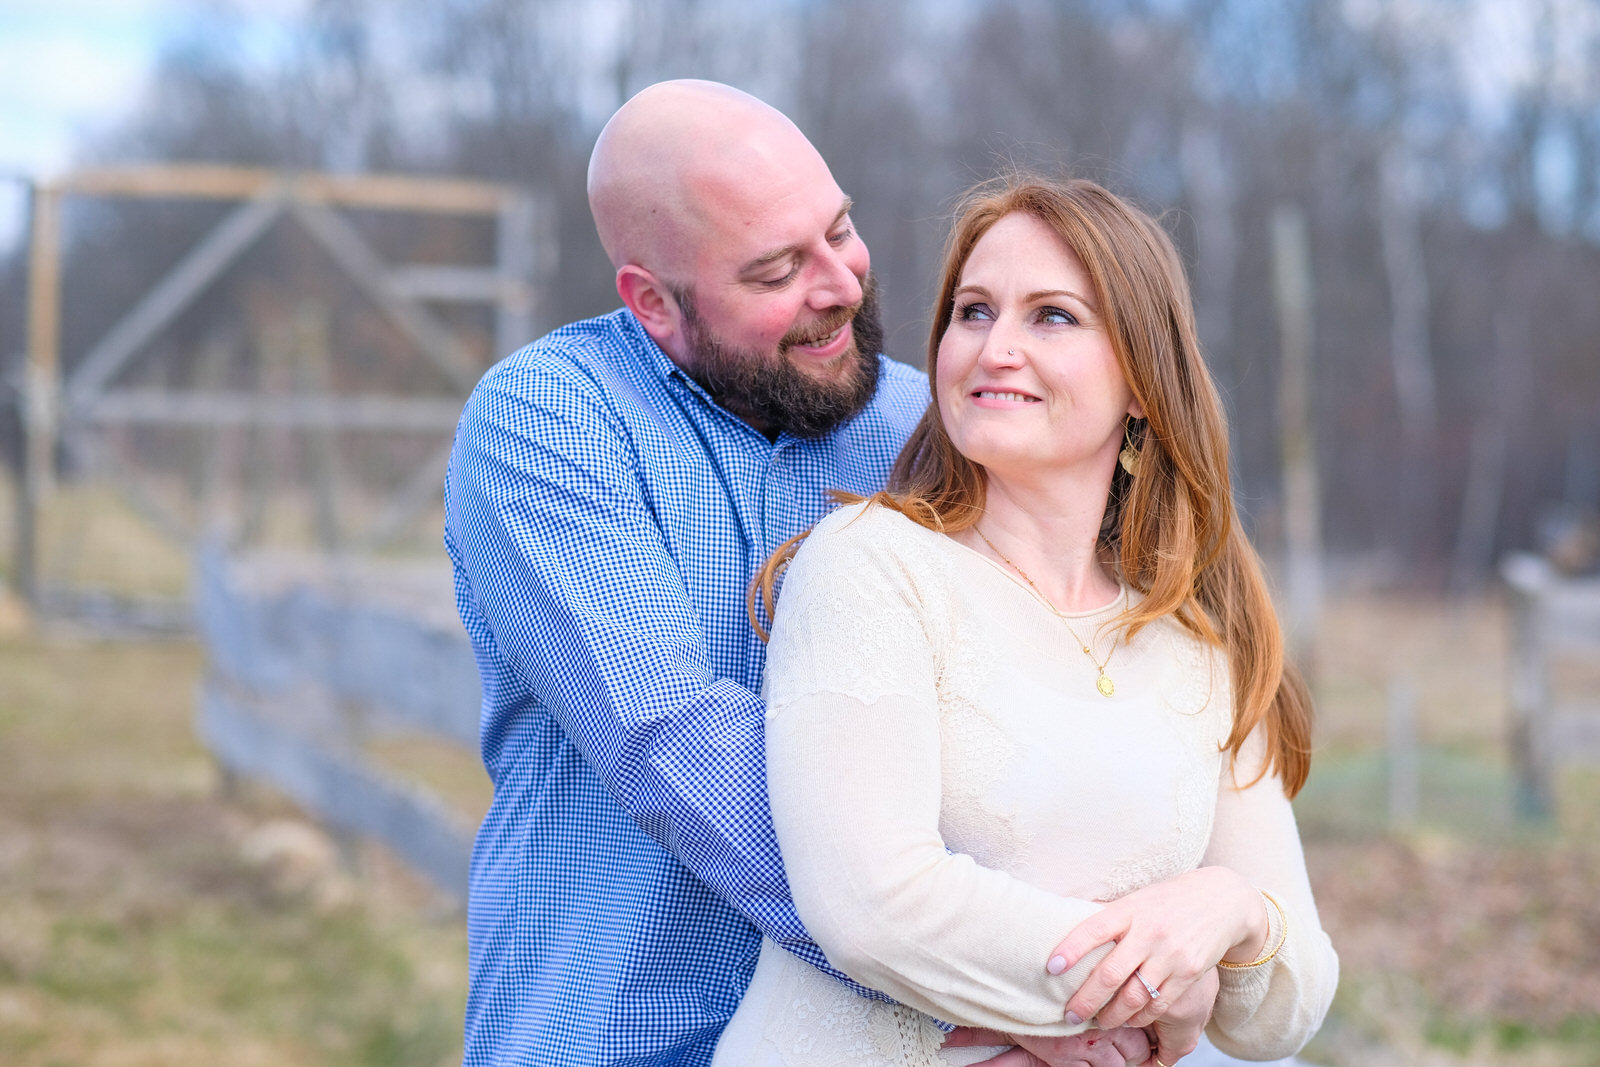 valley-view-farm-engagement-photography-95.jpg